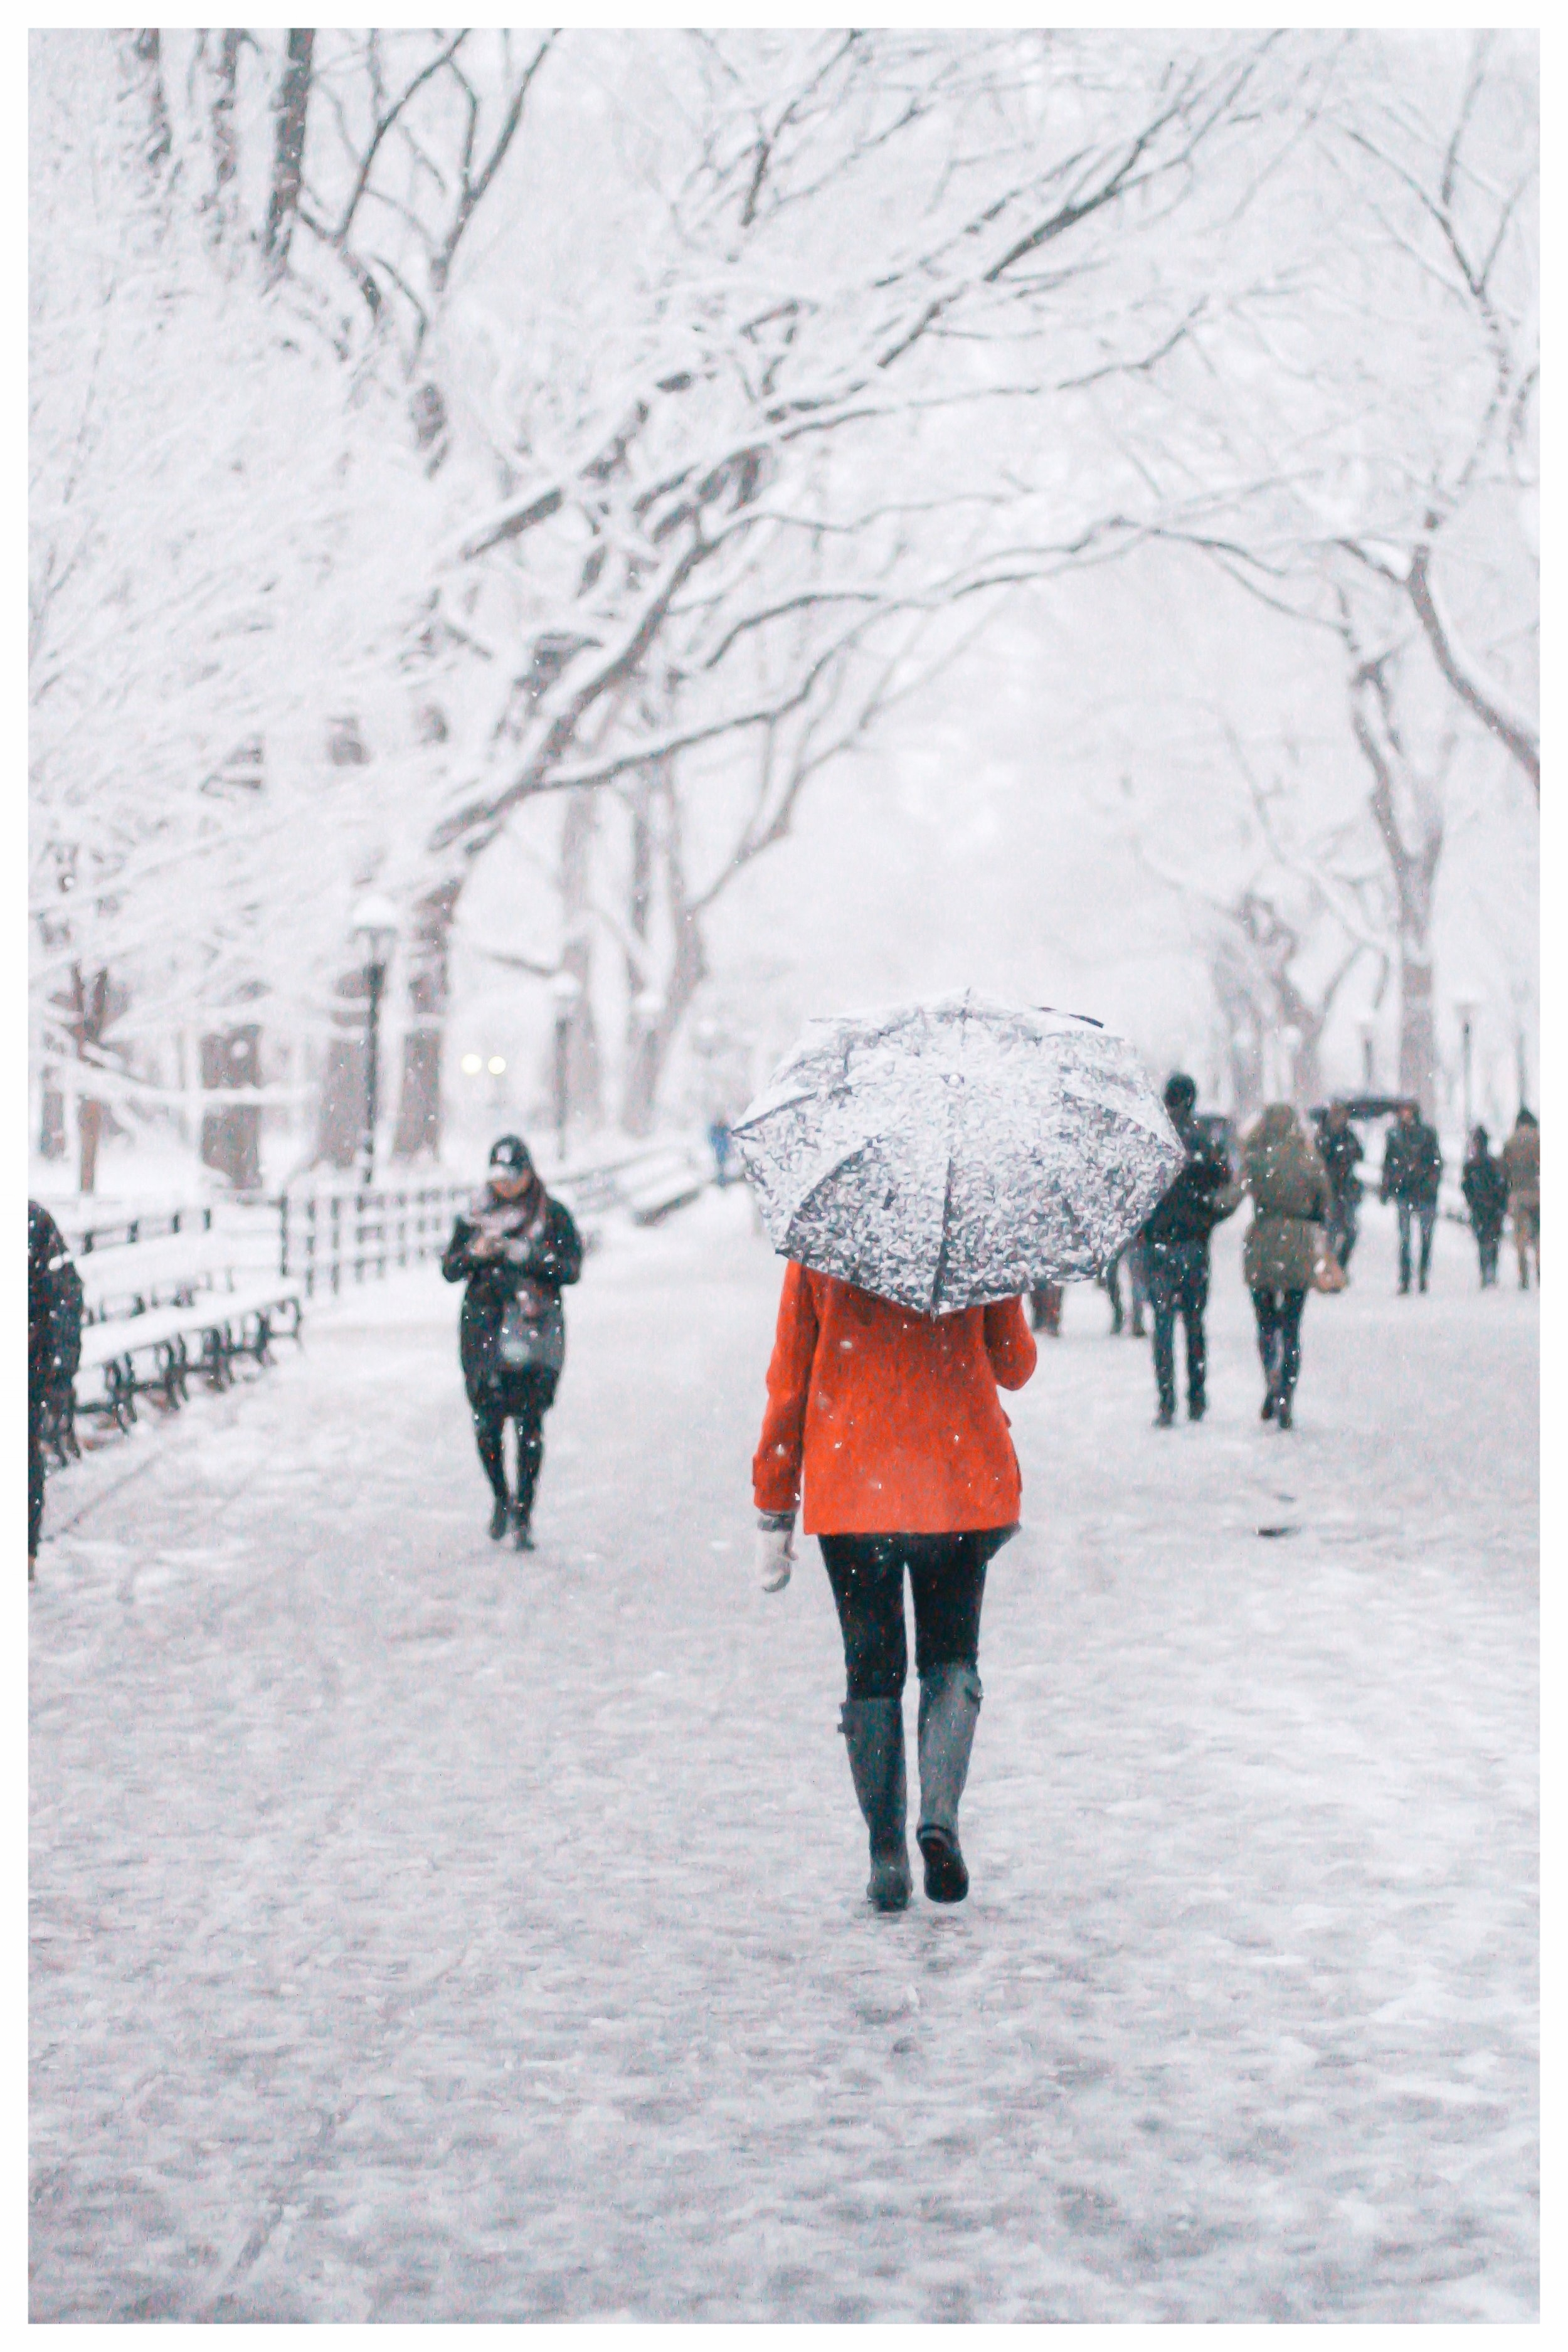 How to Plan a Magical Christmas Trip to New York City | The best things to do in the city during the holidays, from exploring Central Park and West Village streets to finding the best foods and coziest restaurants. Complete with a map of the best lights and window displays, outfit ideas, what to pack, and how to dress for the cold.